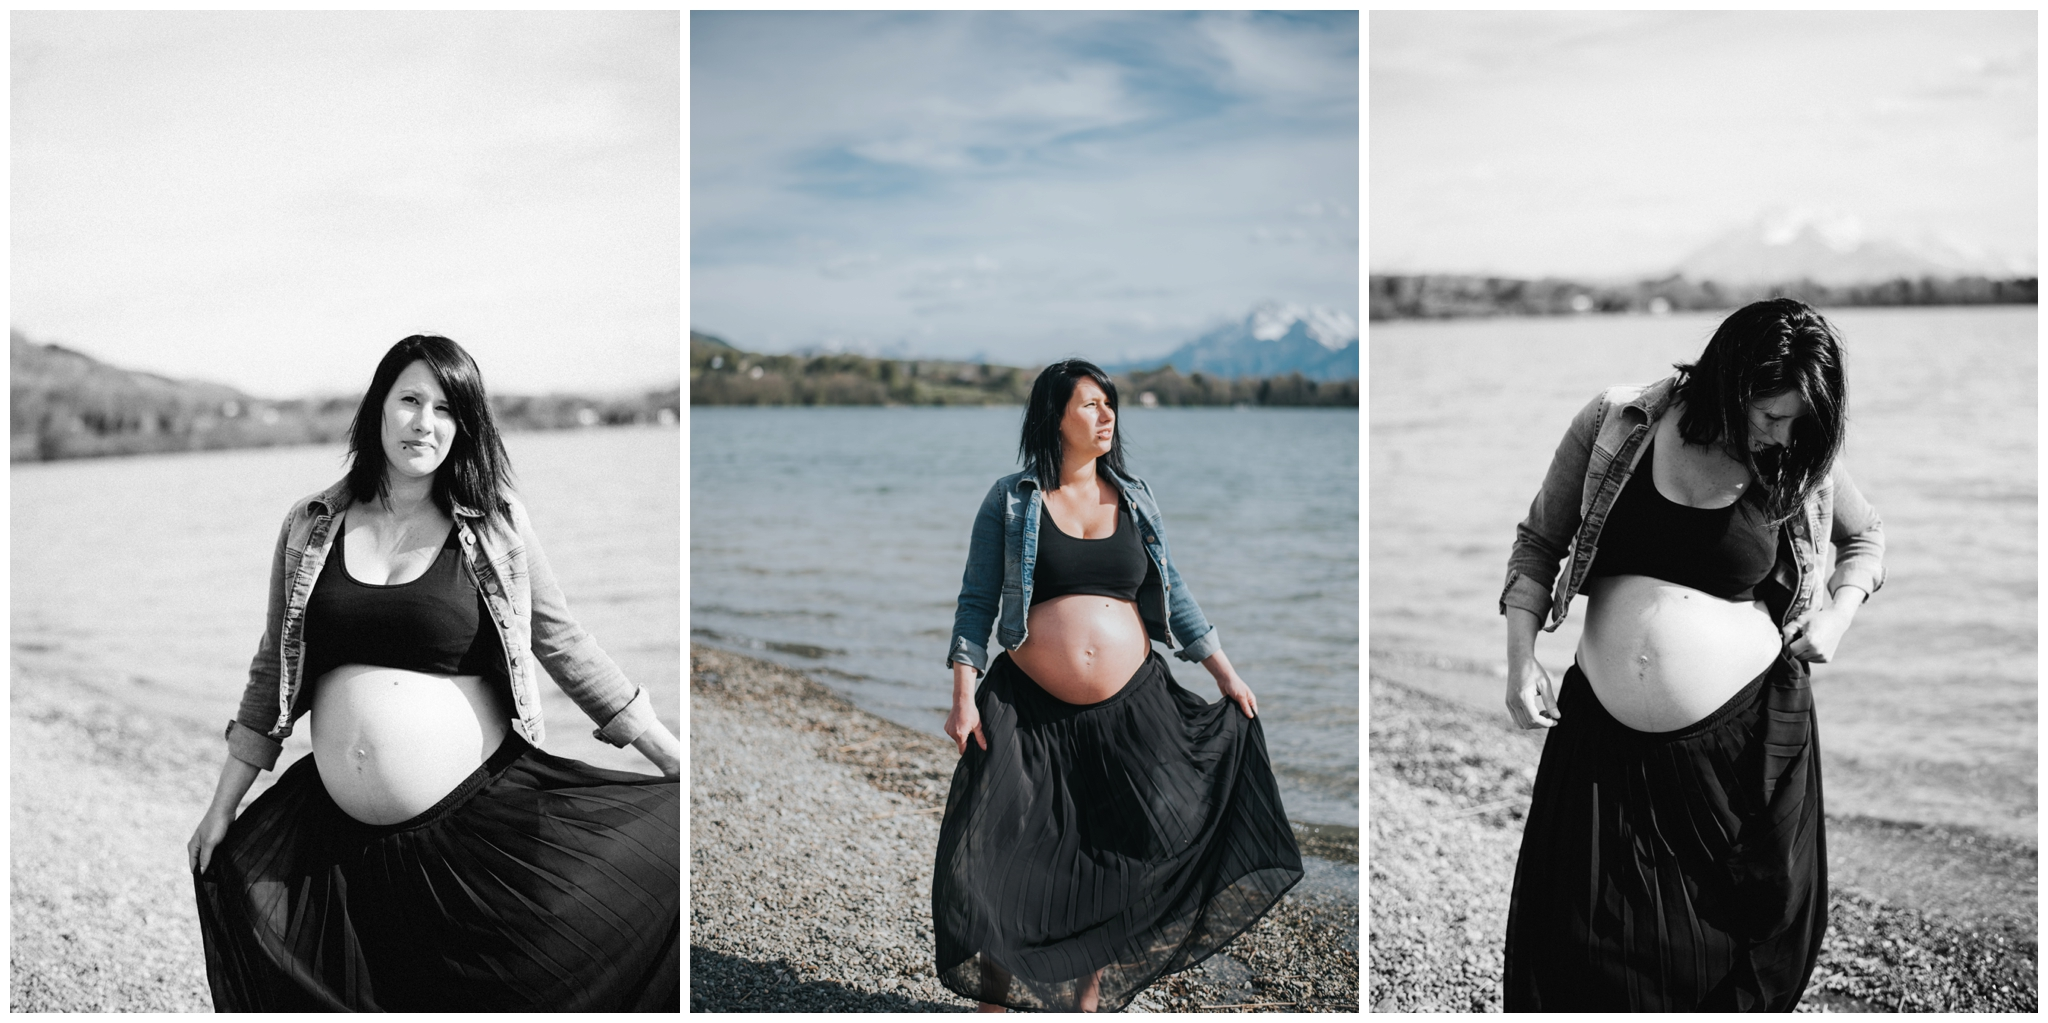 photographe grossesse grenoble annecy voiron future maman seance photo maternite